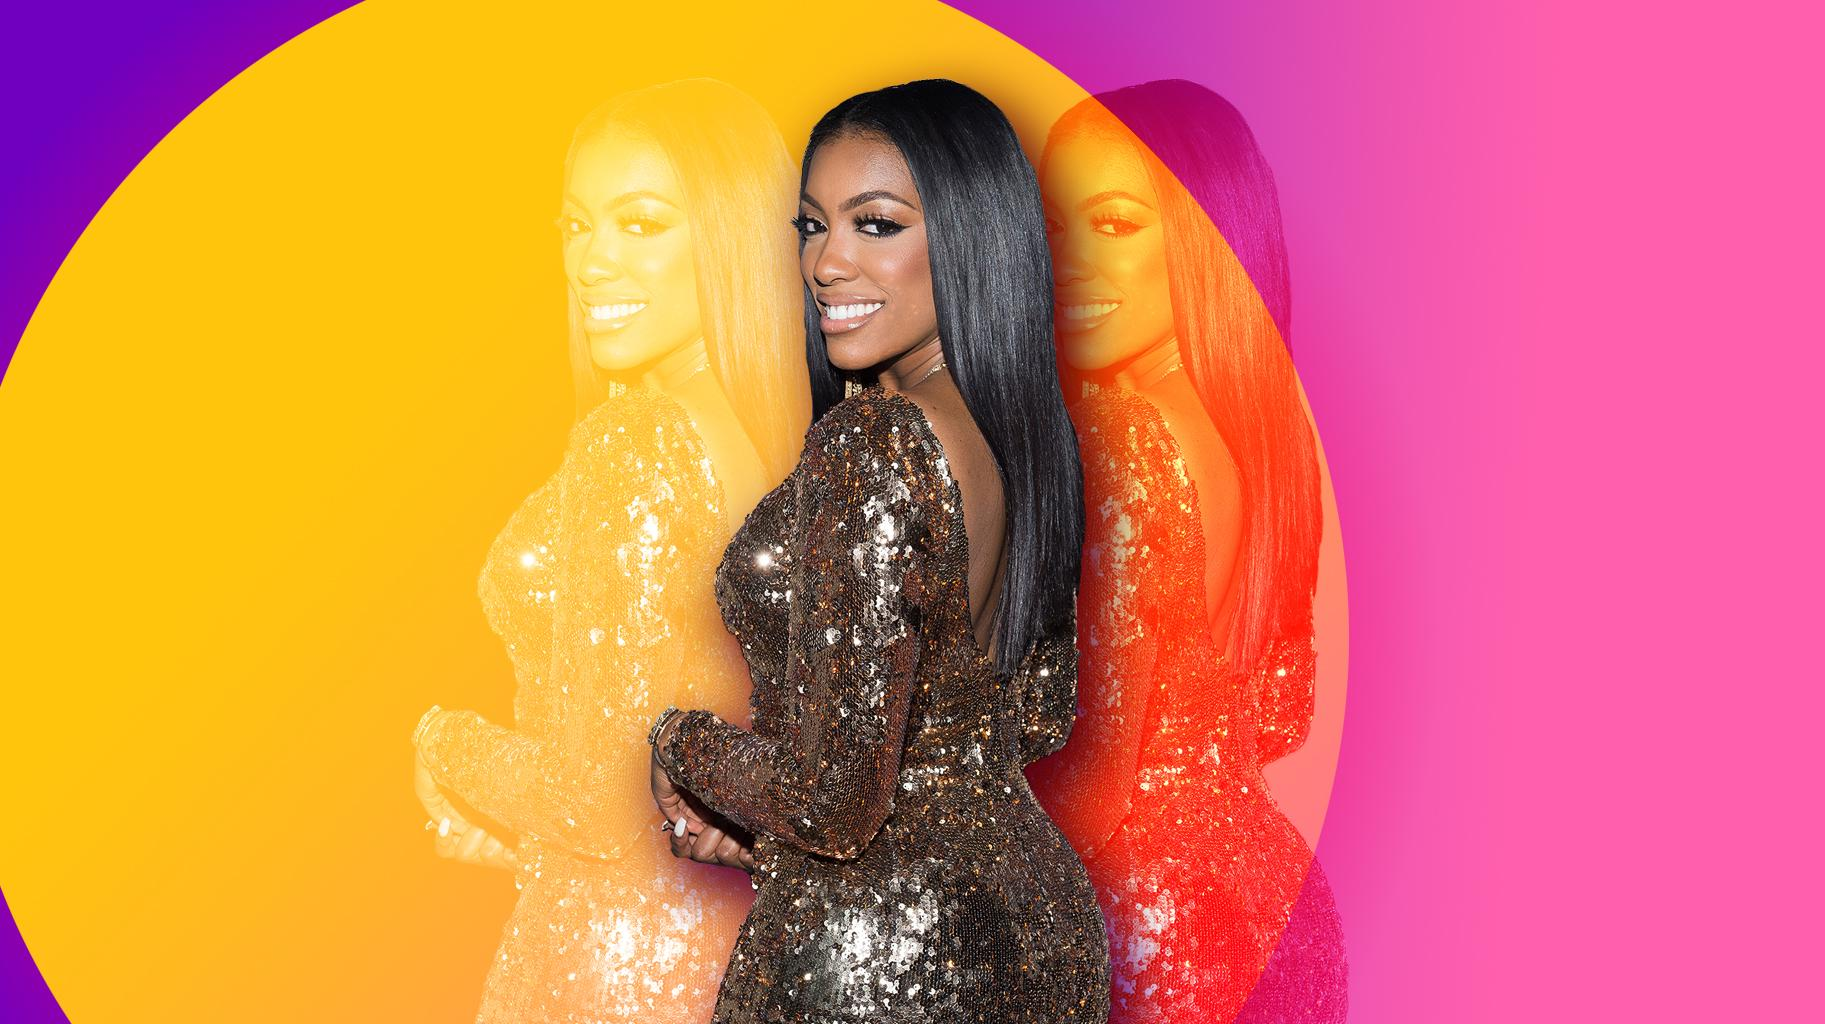 Porsha Williams Ends 2019 With No Makeup Pics With Her Mom On Their Mexico Vacay